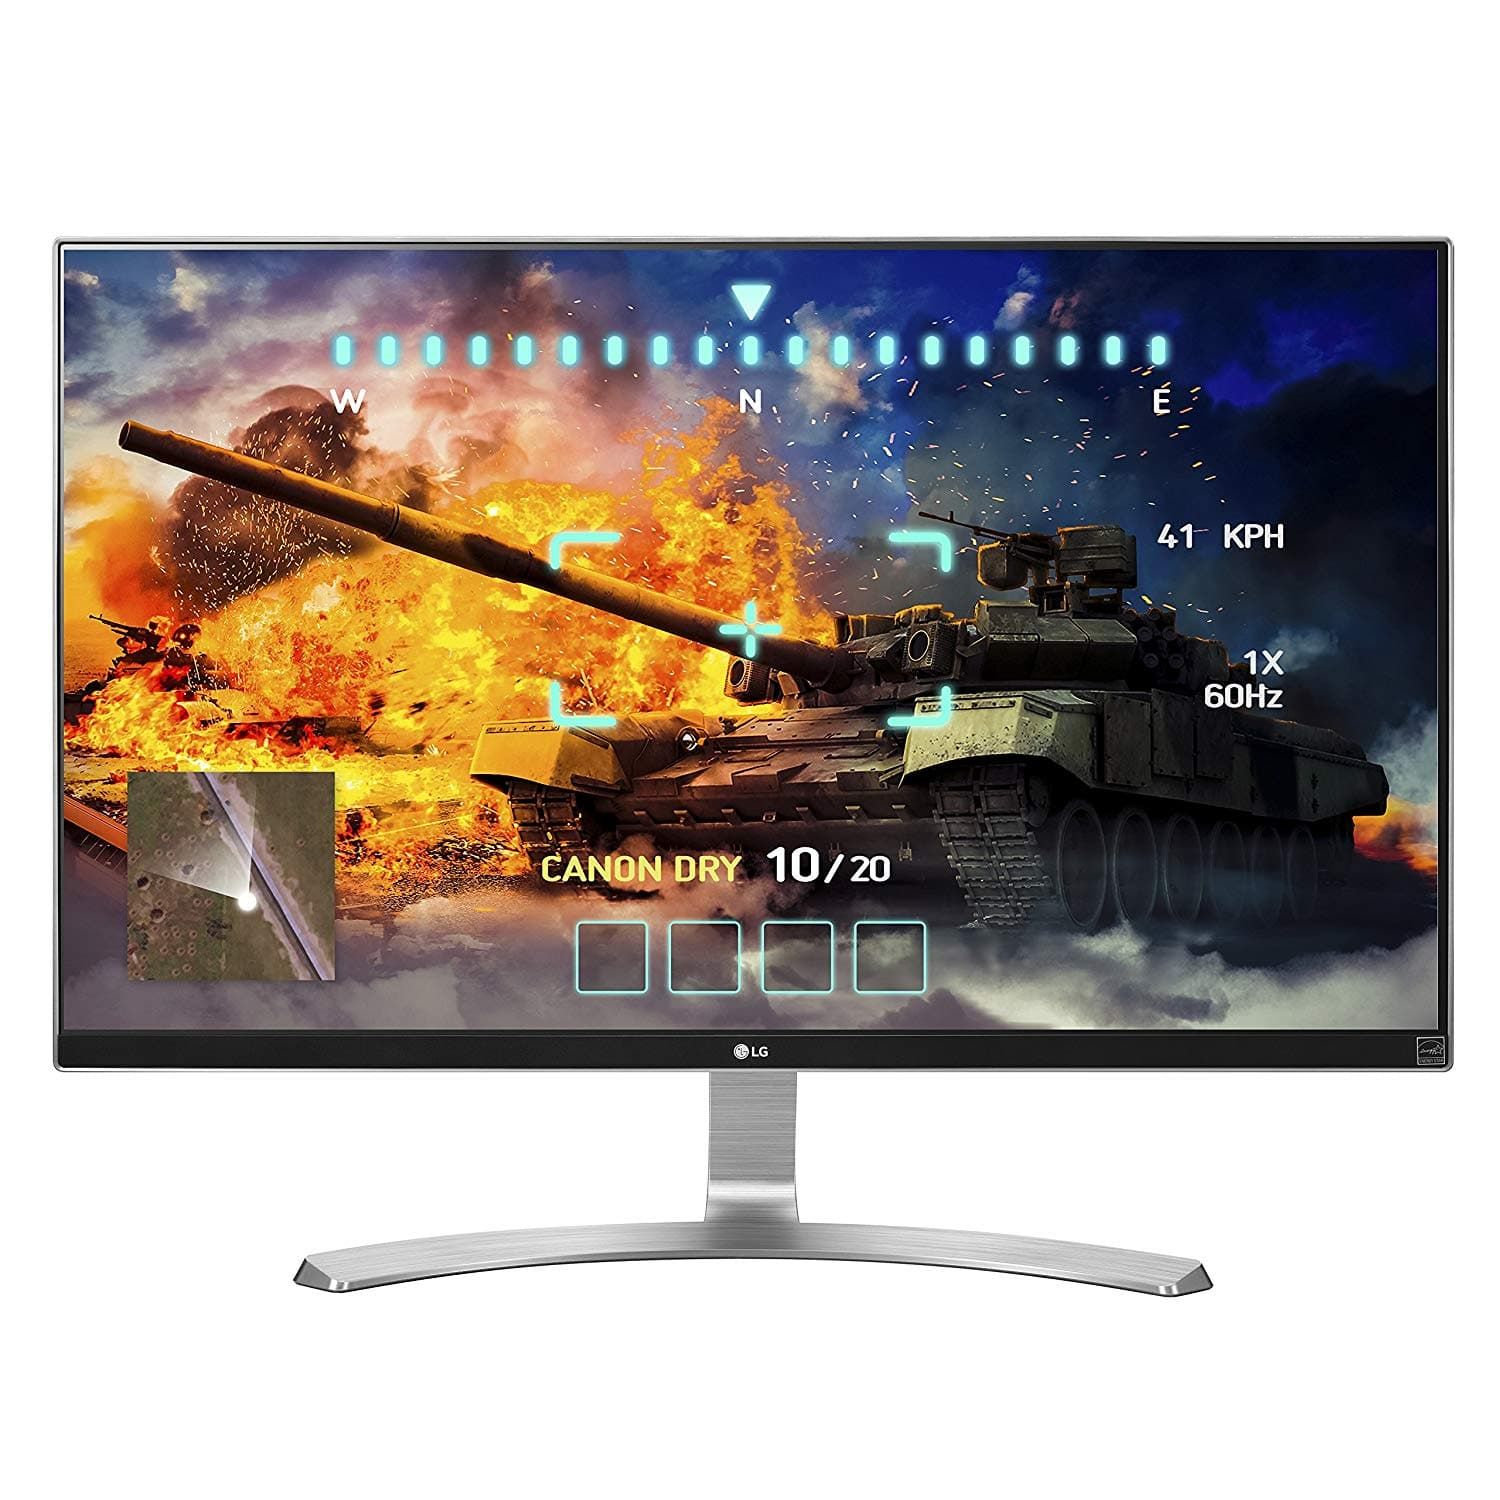 LG 27UD68-W 27-Inch 4K UHD IPS Monitor with FreeSync, Silver/White, VESA mount $300